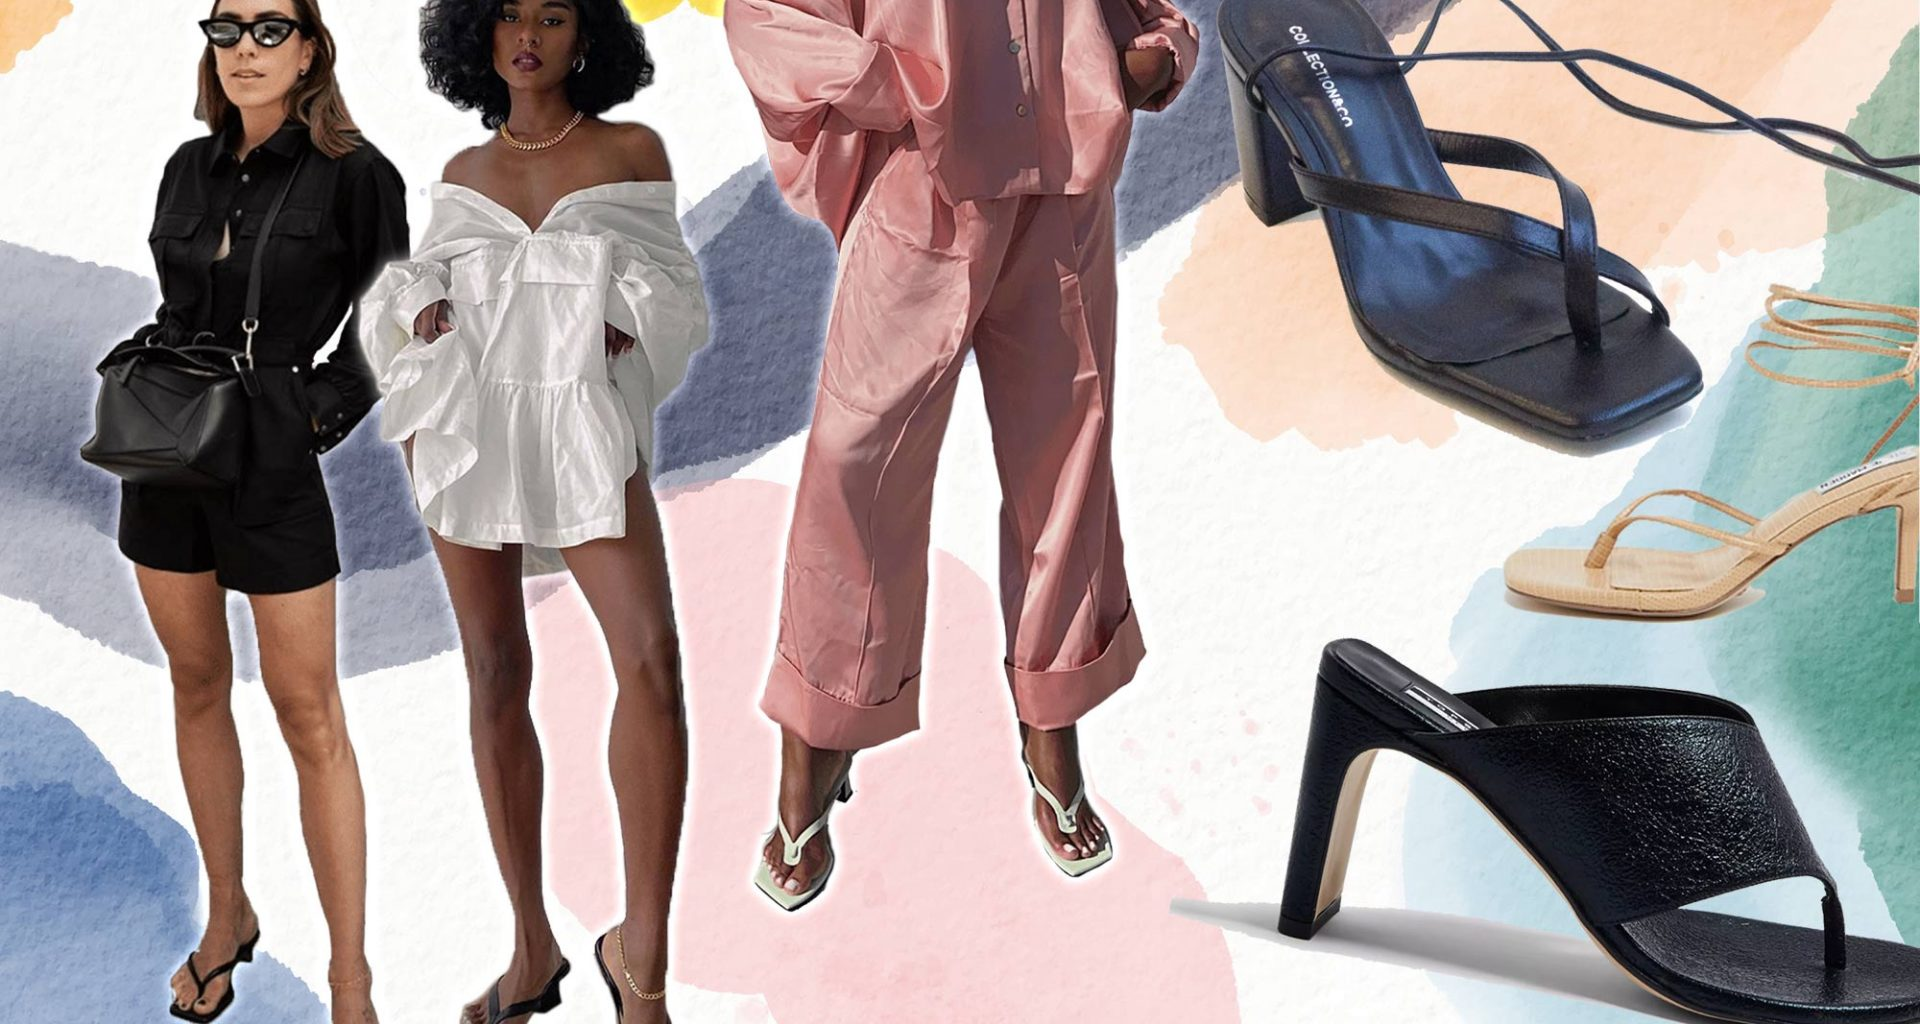 thong sandals trend T bar sandals thong shoes